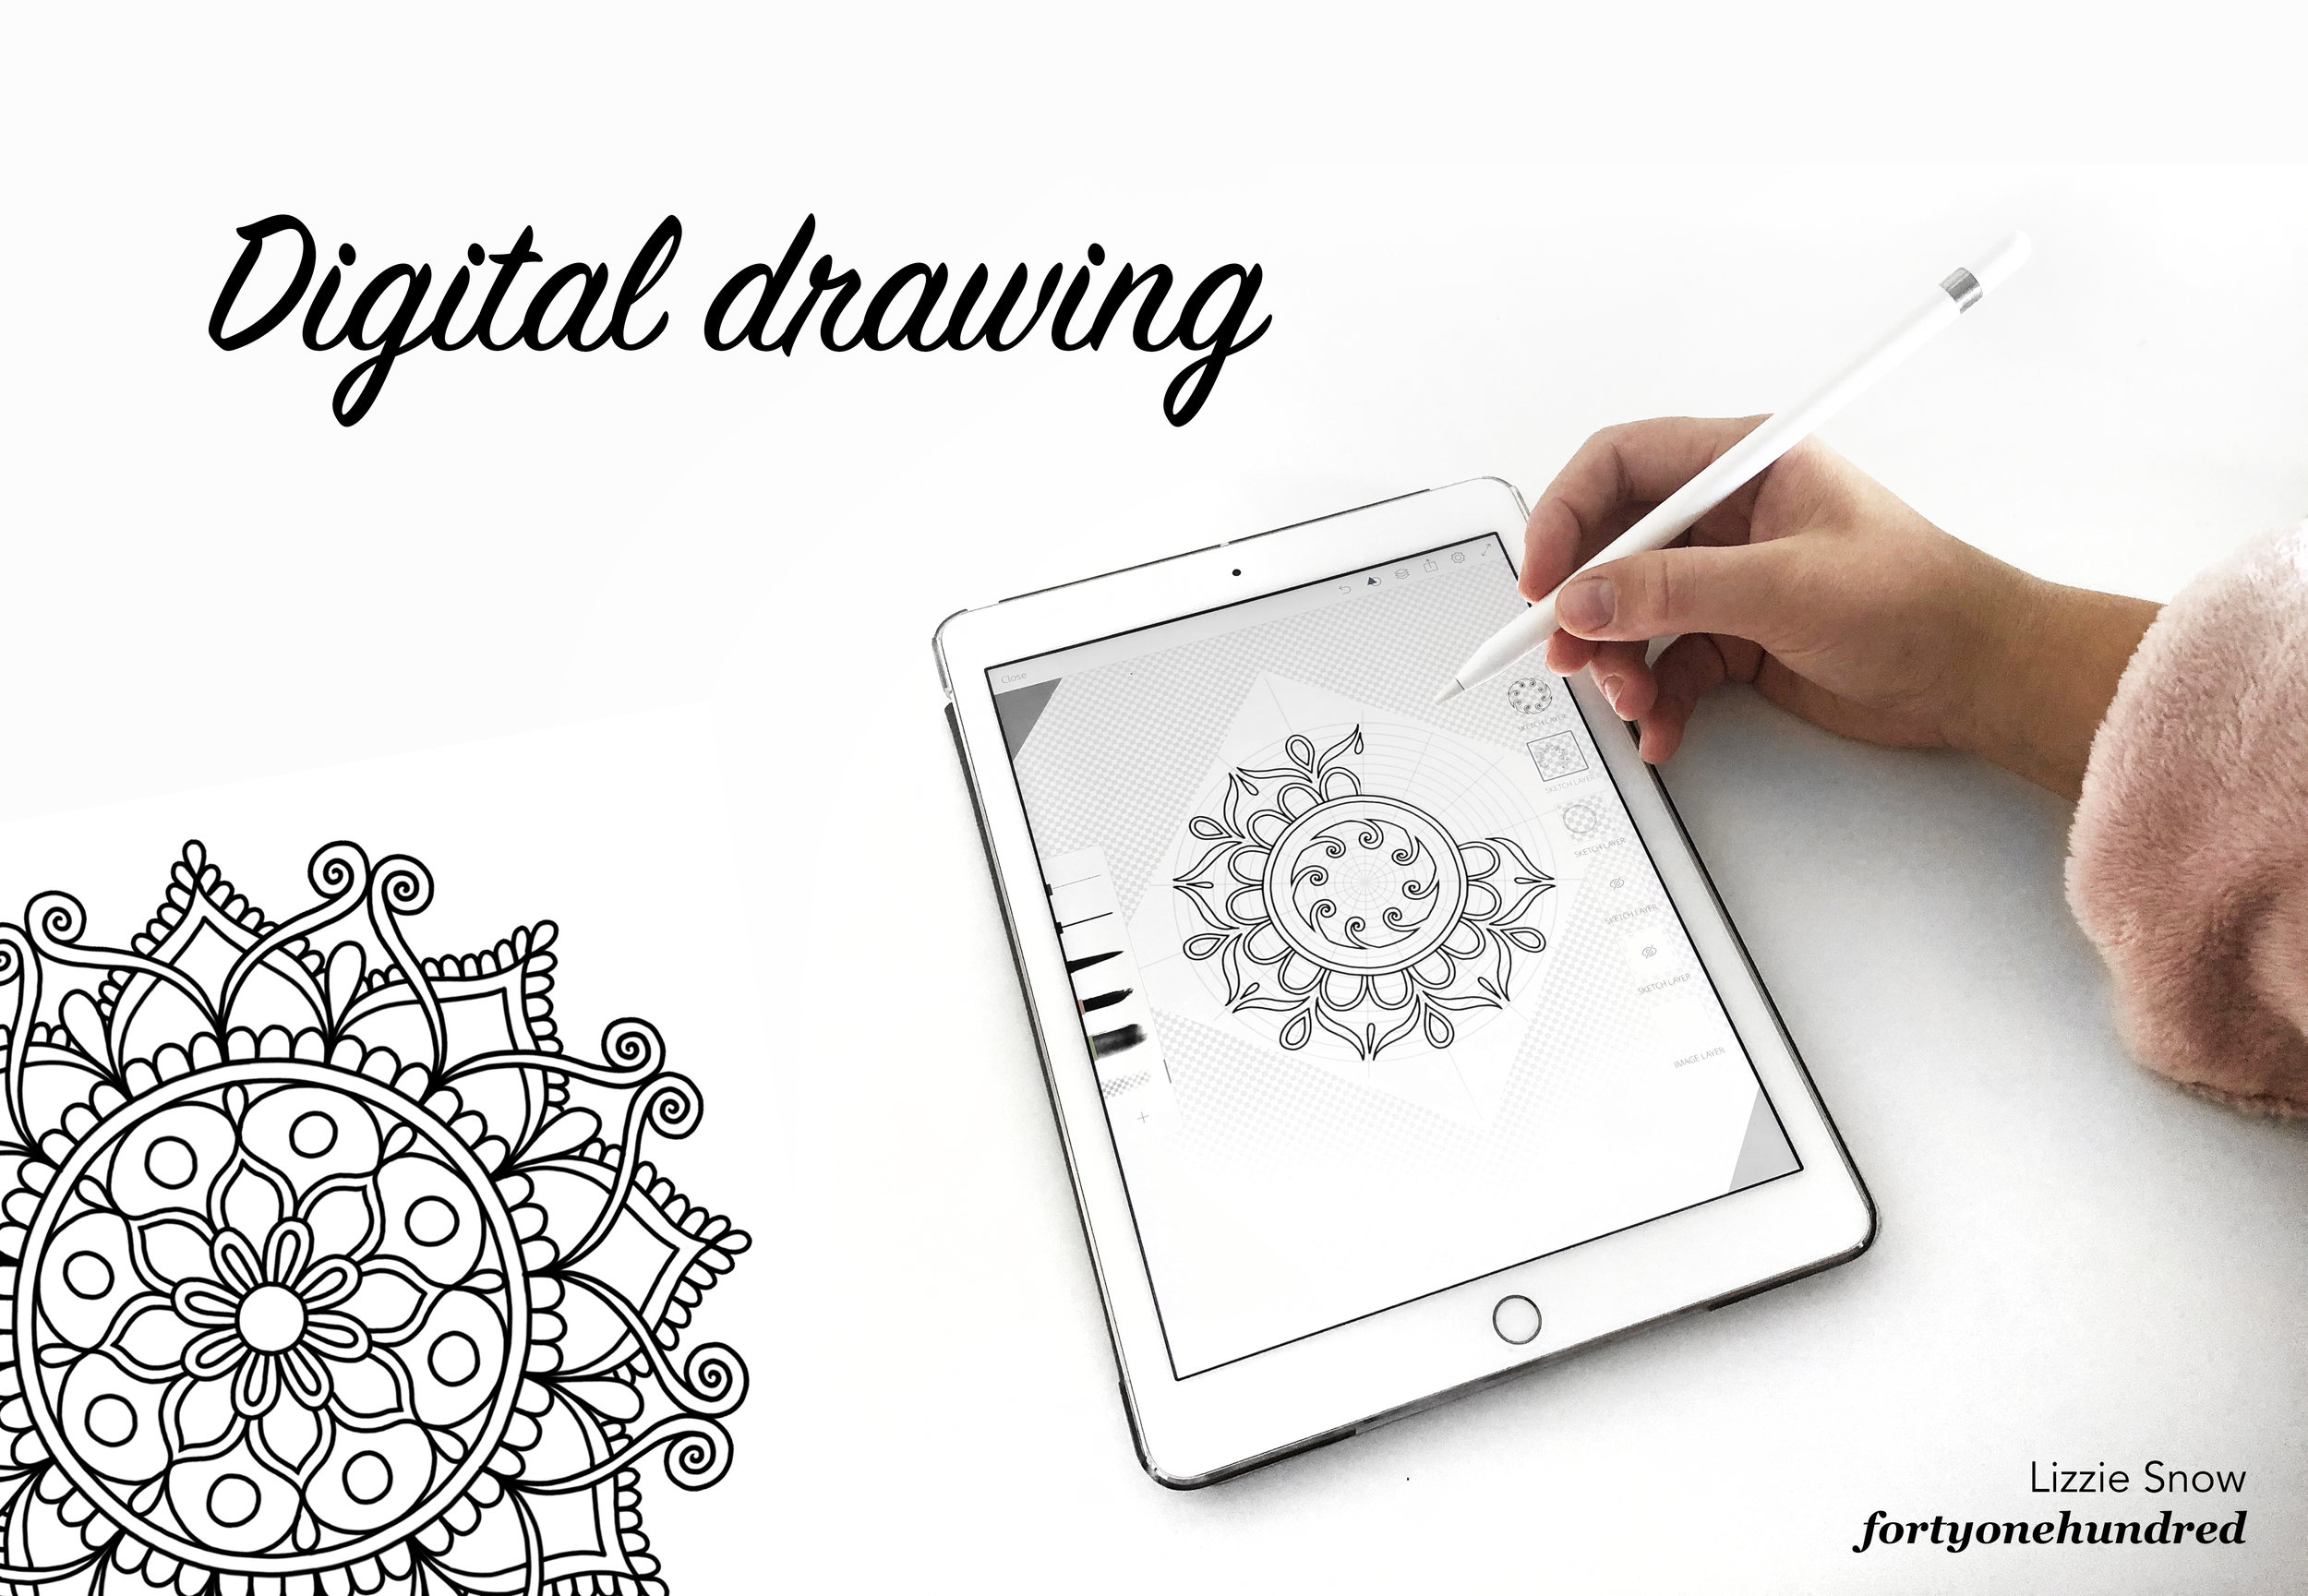 fortyonehundred-blog-drawing-digital-apple-ipadpro-adobe-mandalas-macbookpro-applepencil